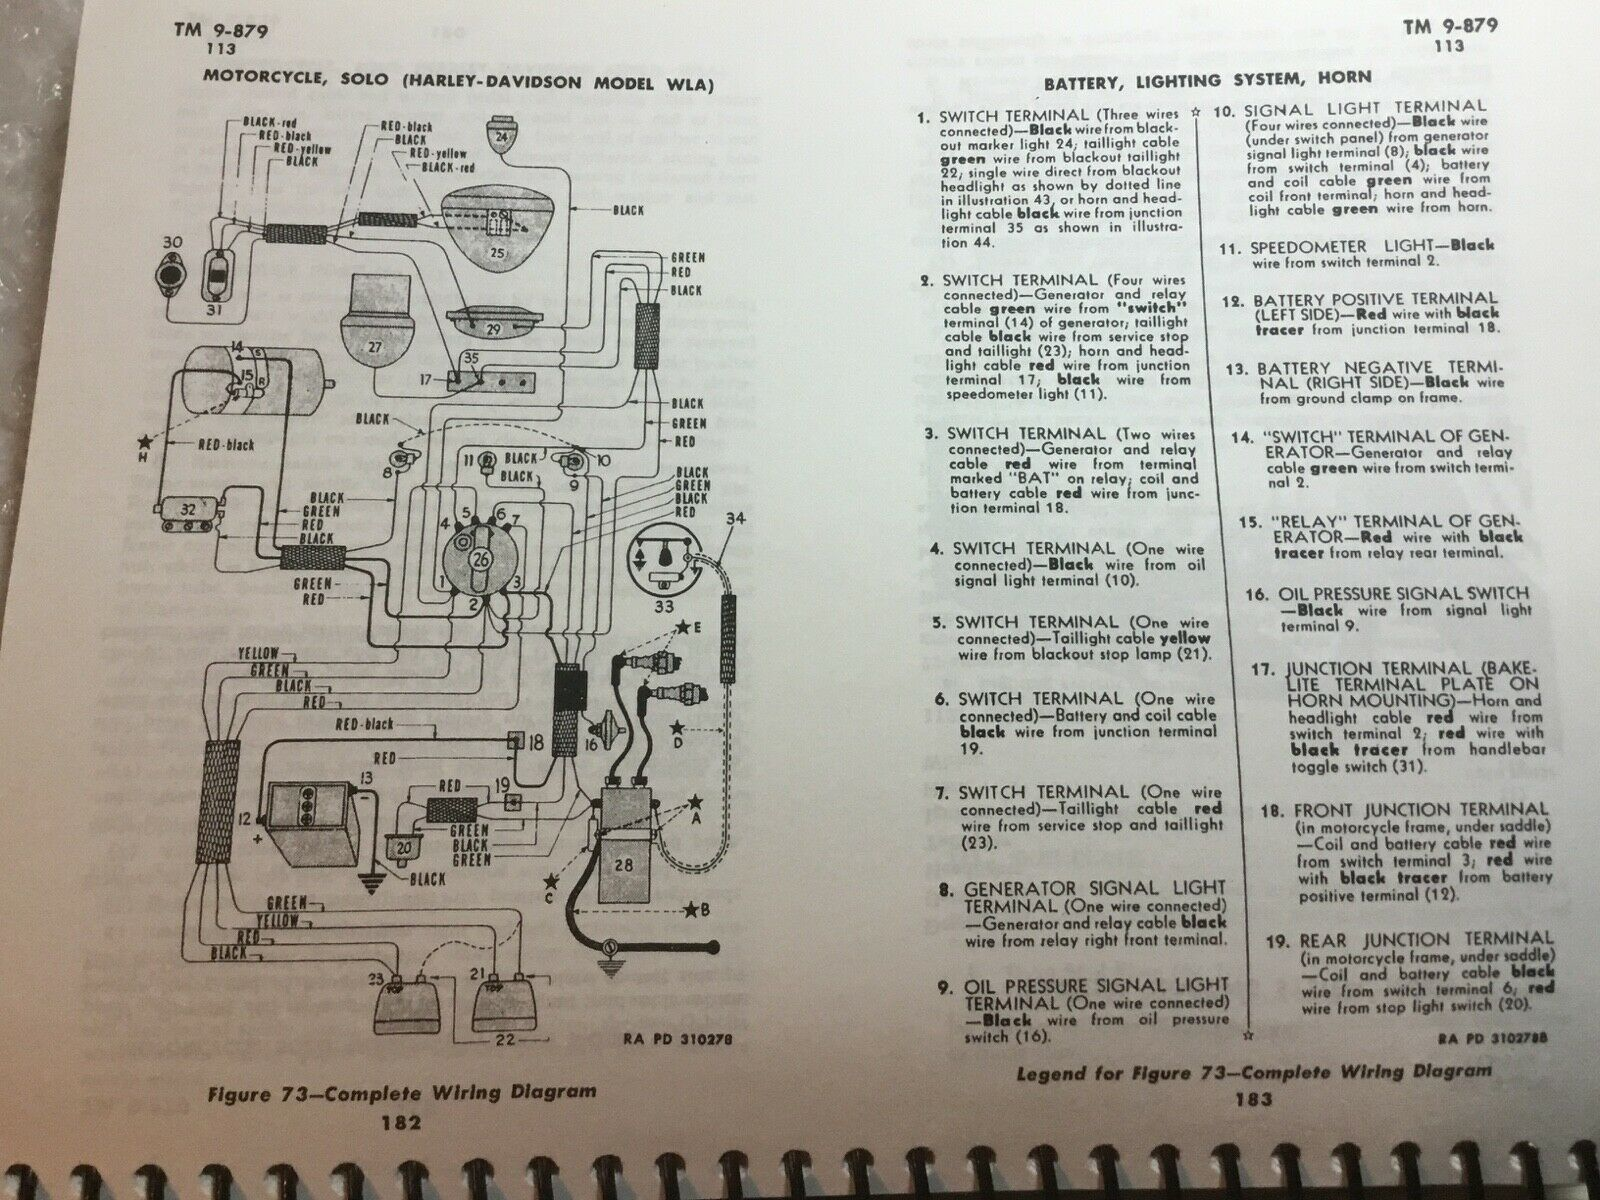 harley wiring color codes, harley switch diagram, harley dash wiring, harley headlight diagram, harley fuel pump diagram, harley fuel lines diagram, harley fuse diagram, harley evo diagram, harley magneto diagram, harley relay diagram, harley panhead wiring, harley stator diagram, harley frame diagram, harley generator diagram, harley wiring tools, harley softail wiring harness, harley throttle cable diagram, harley shift linkage diagram, harley rear axle diagram, on harley wiring diagram tail lamp